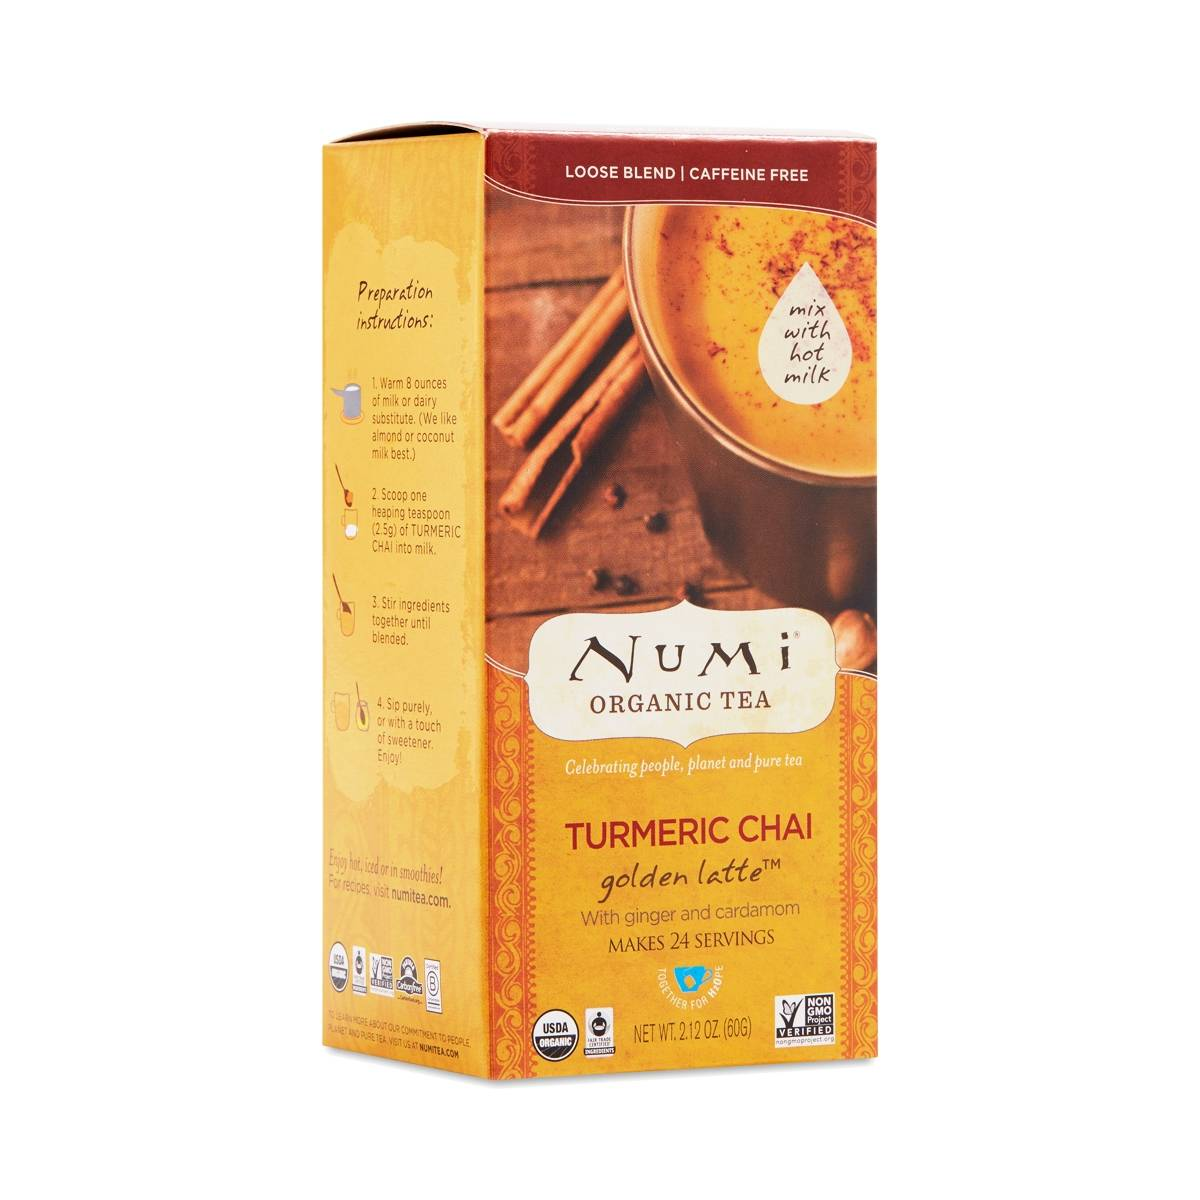 Turmeric Chai Golden Latte By Numi Thrive Market